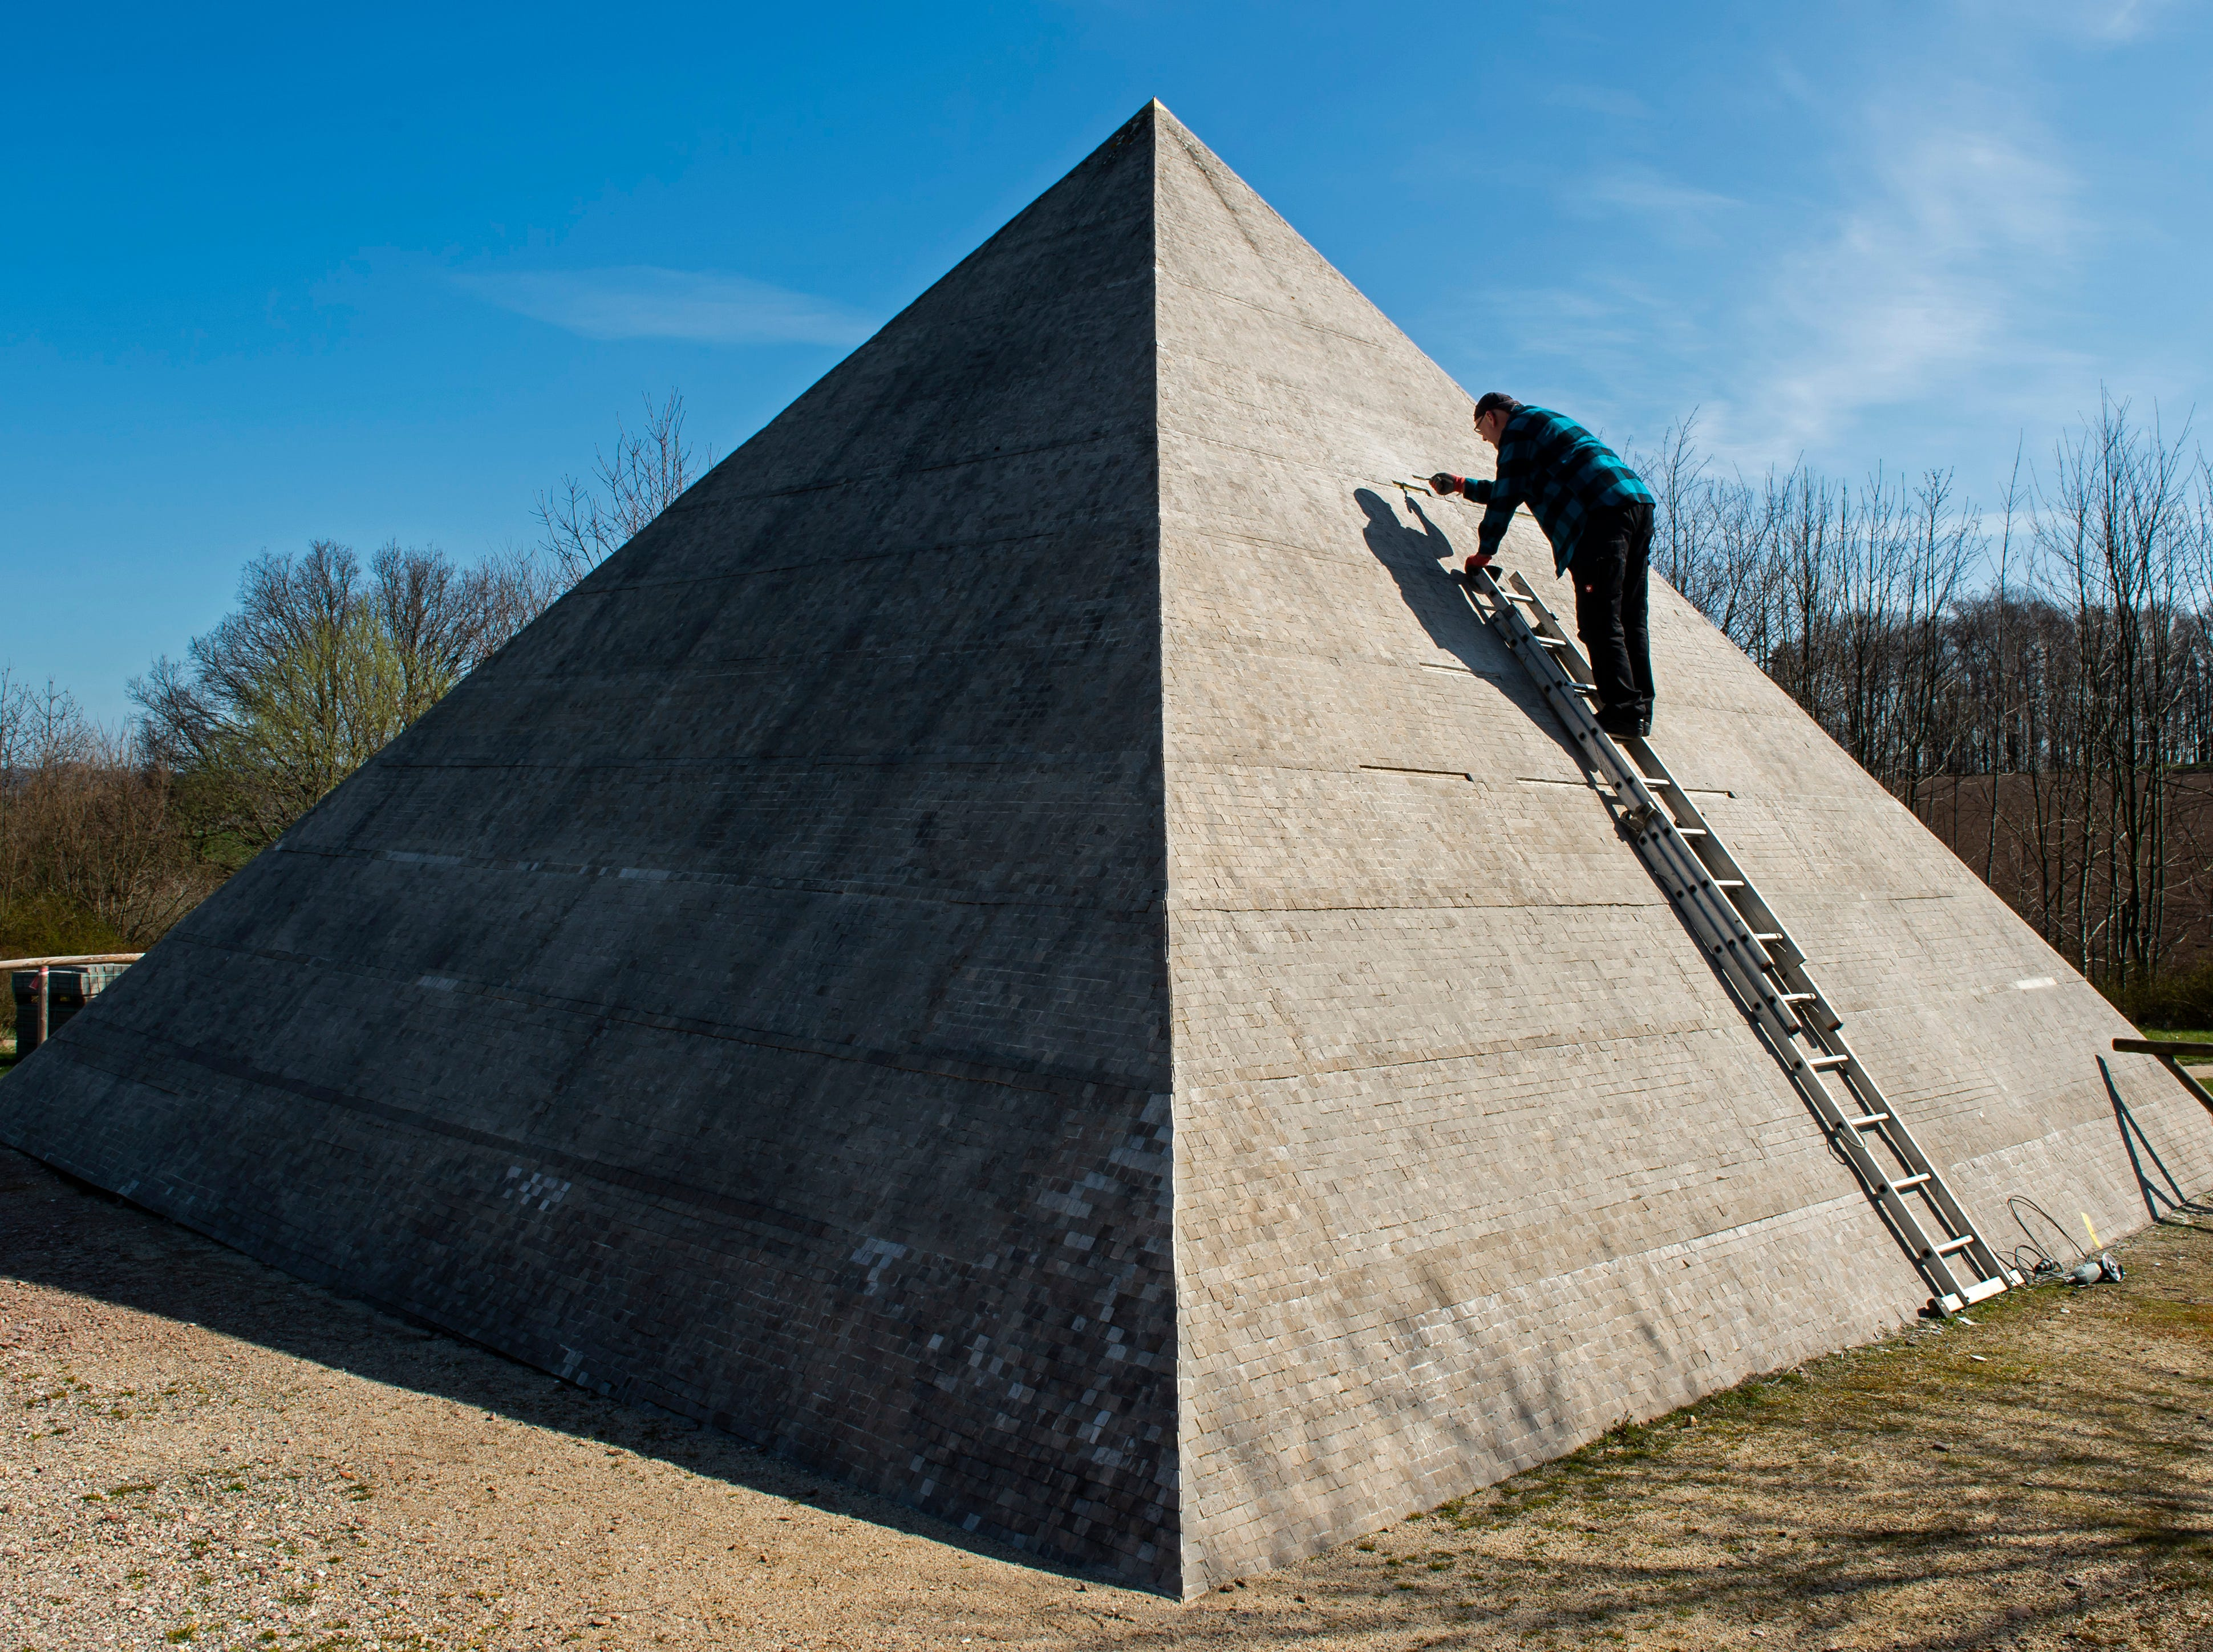 A worker fixes small stones at the model of the Cheops pyramid of Giza during the annual renovation prior the season's opening next weekend in the landscape park Miniwelt (Miniworld) in Lichtenstein, eastern Germany, Monday, April 1, 2019. The cultural park Miniworld presents about 100 original and true-to detail buildings and technical facilities at a 1:25 scale ranging on an area of 6,5 hectare.